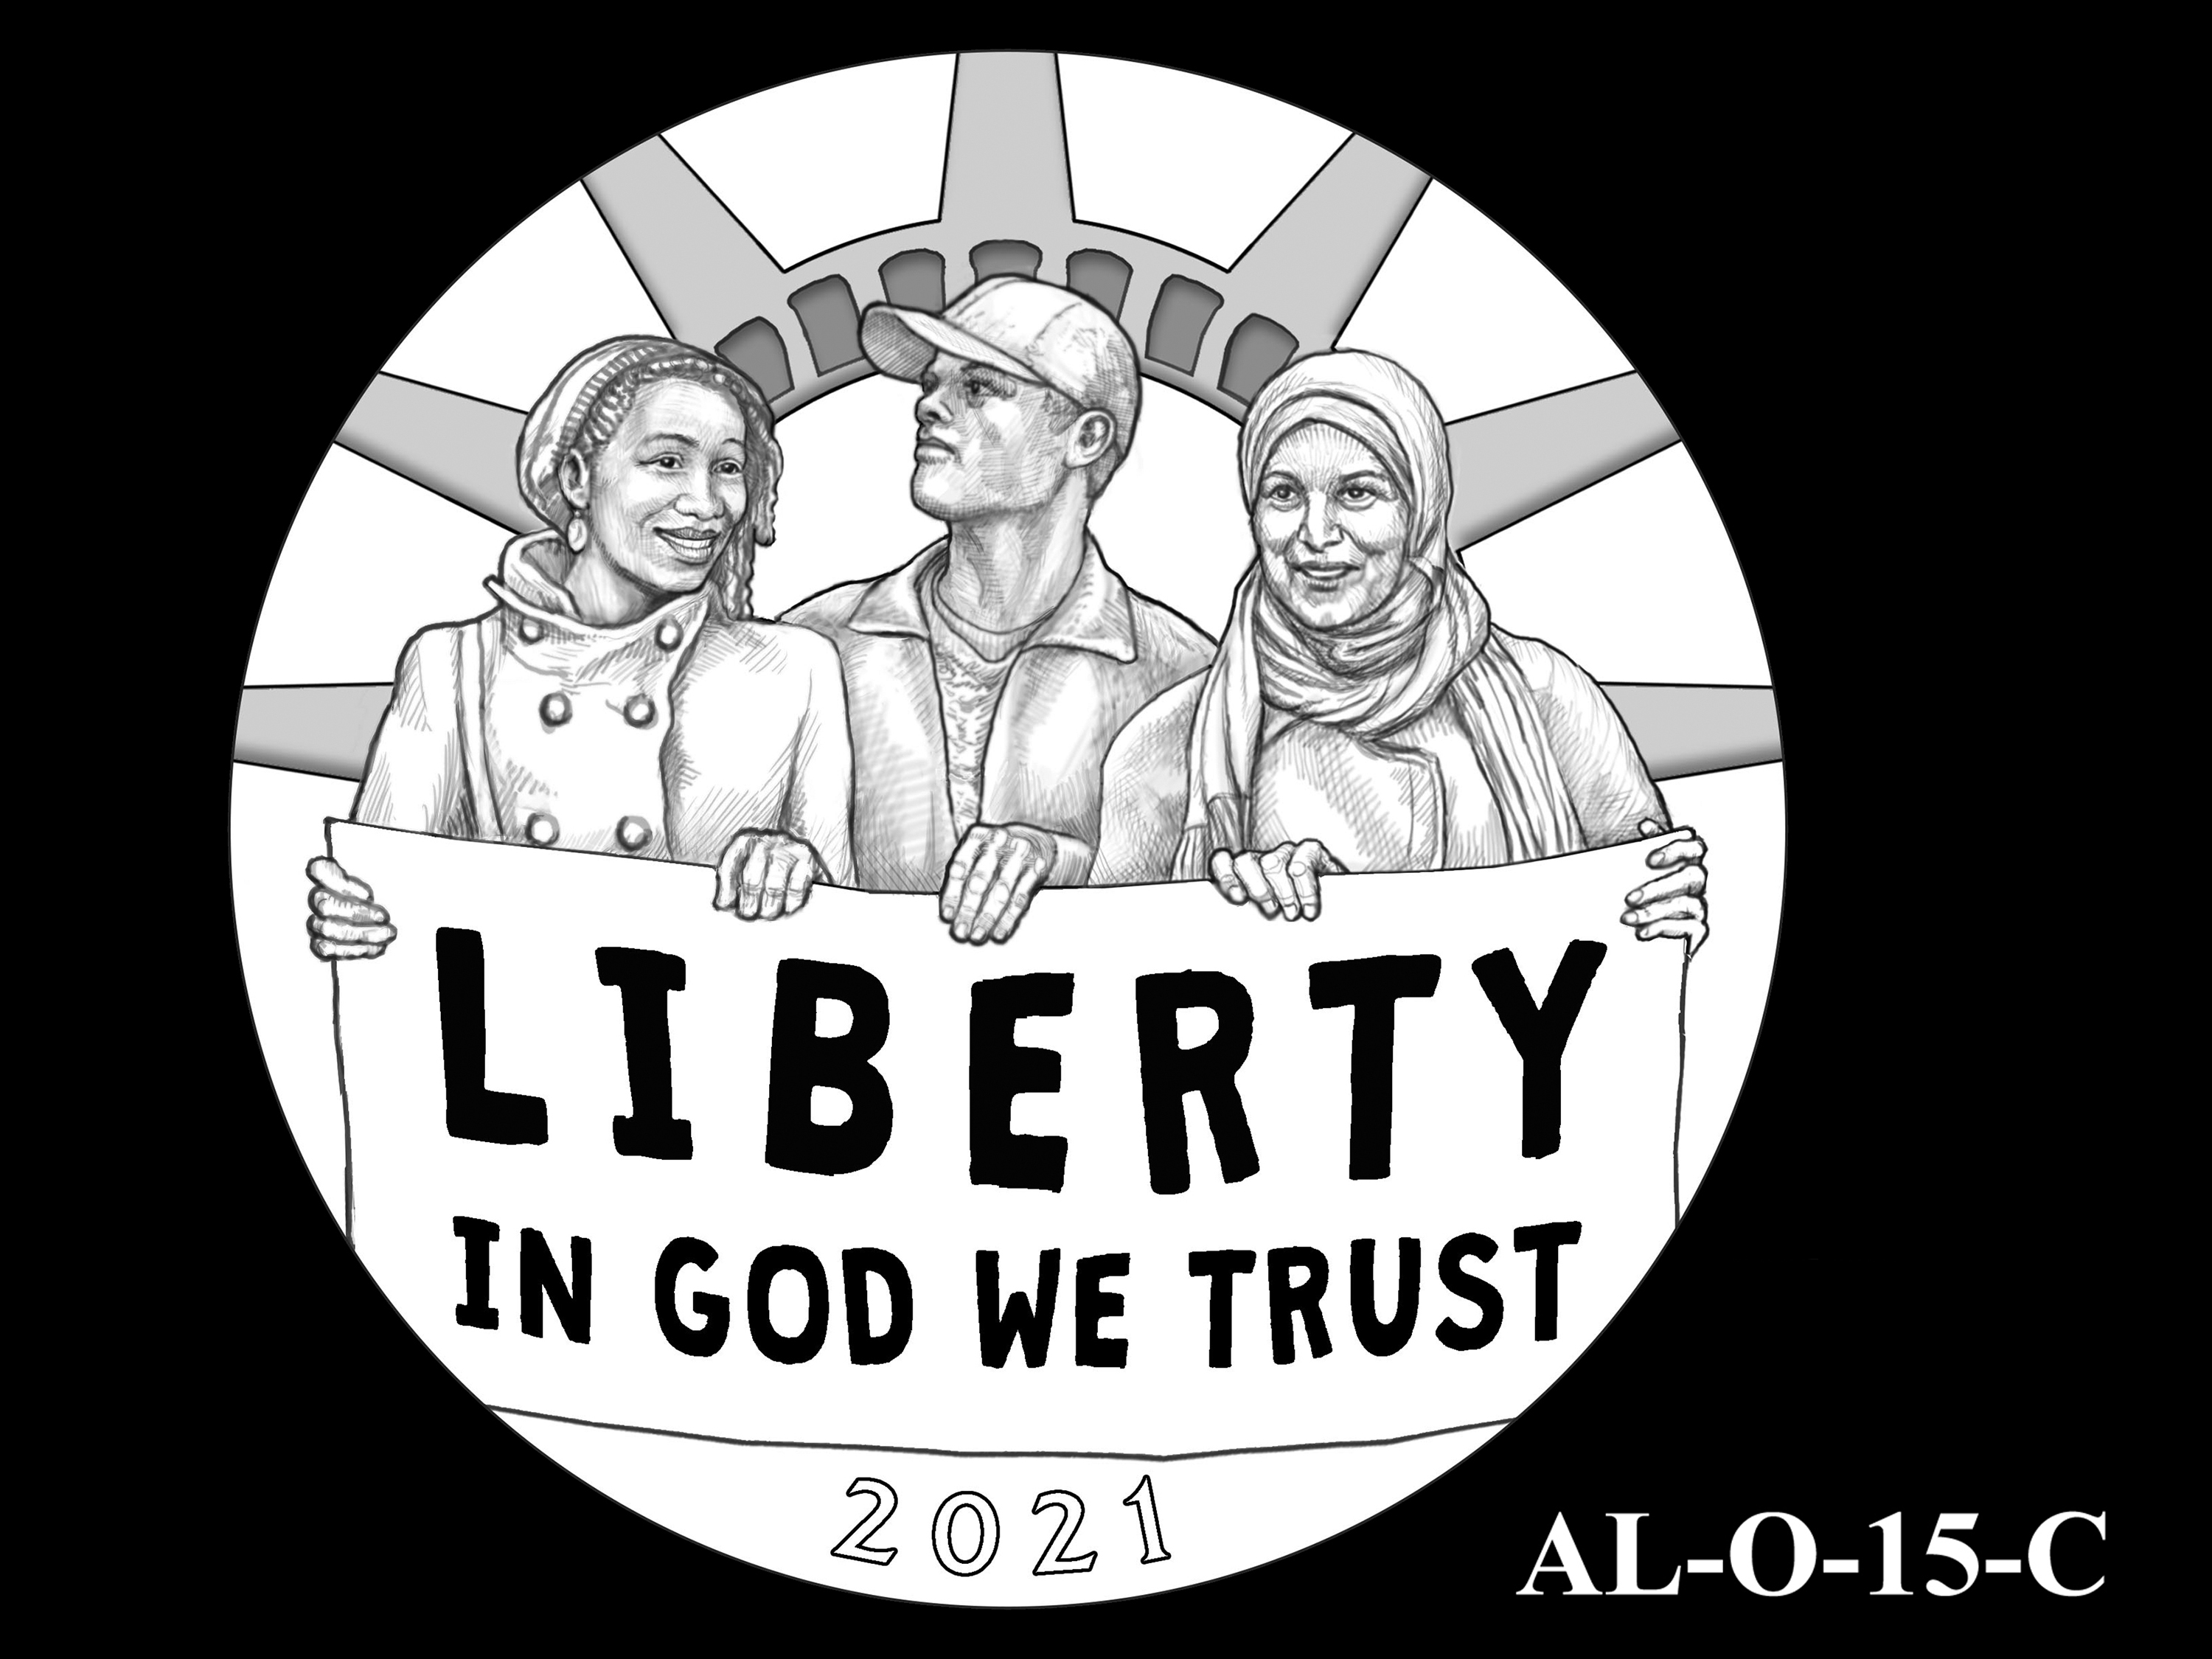 AL-O-15-C -- 2021 American Liberty Gold Coin and Silver Medal Program - Obverse